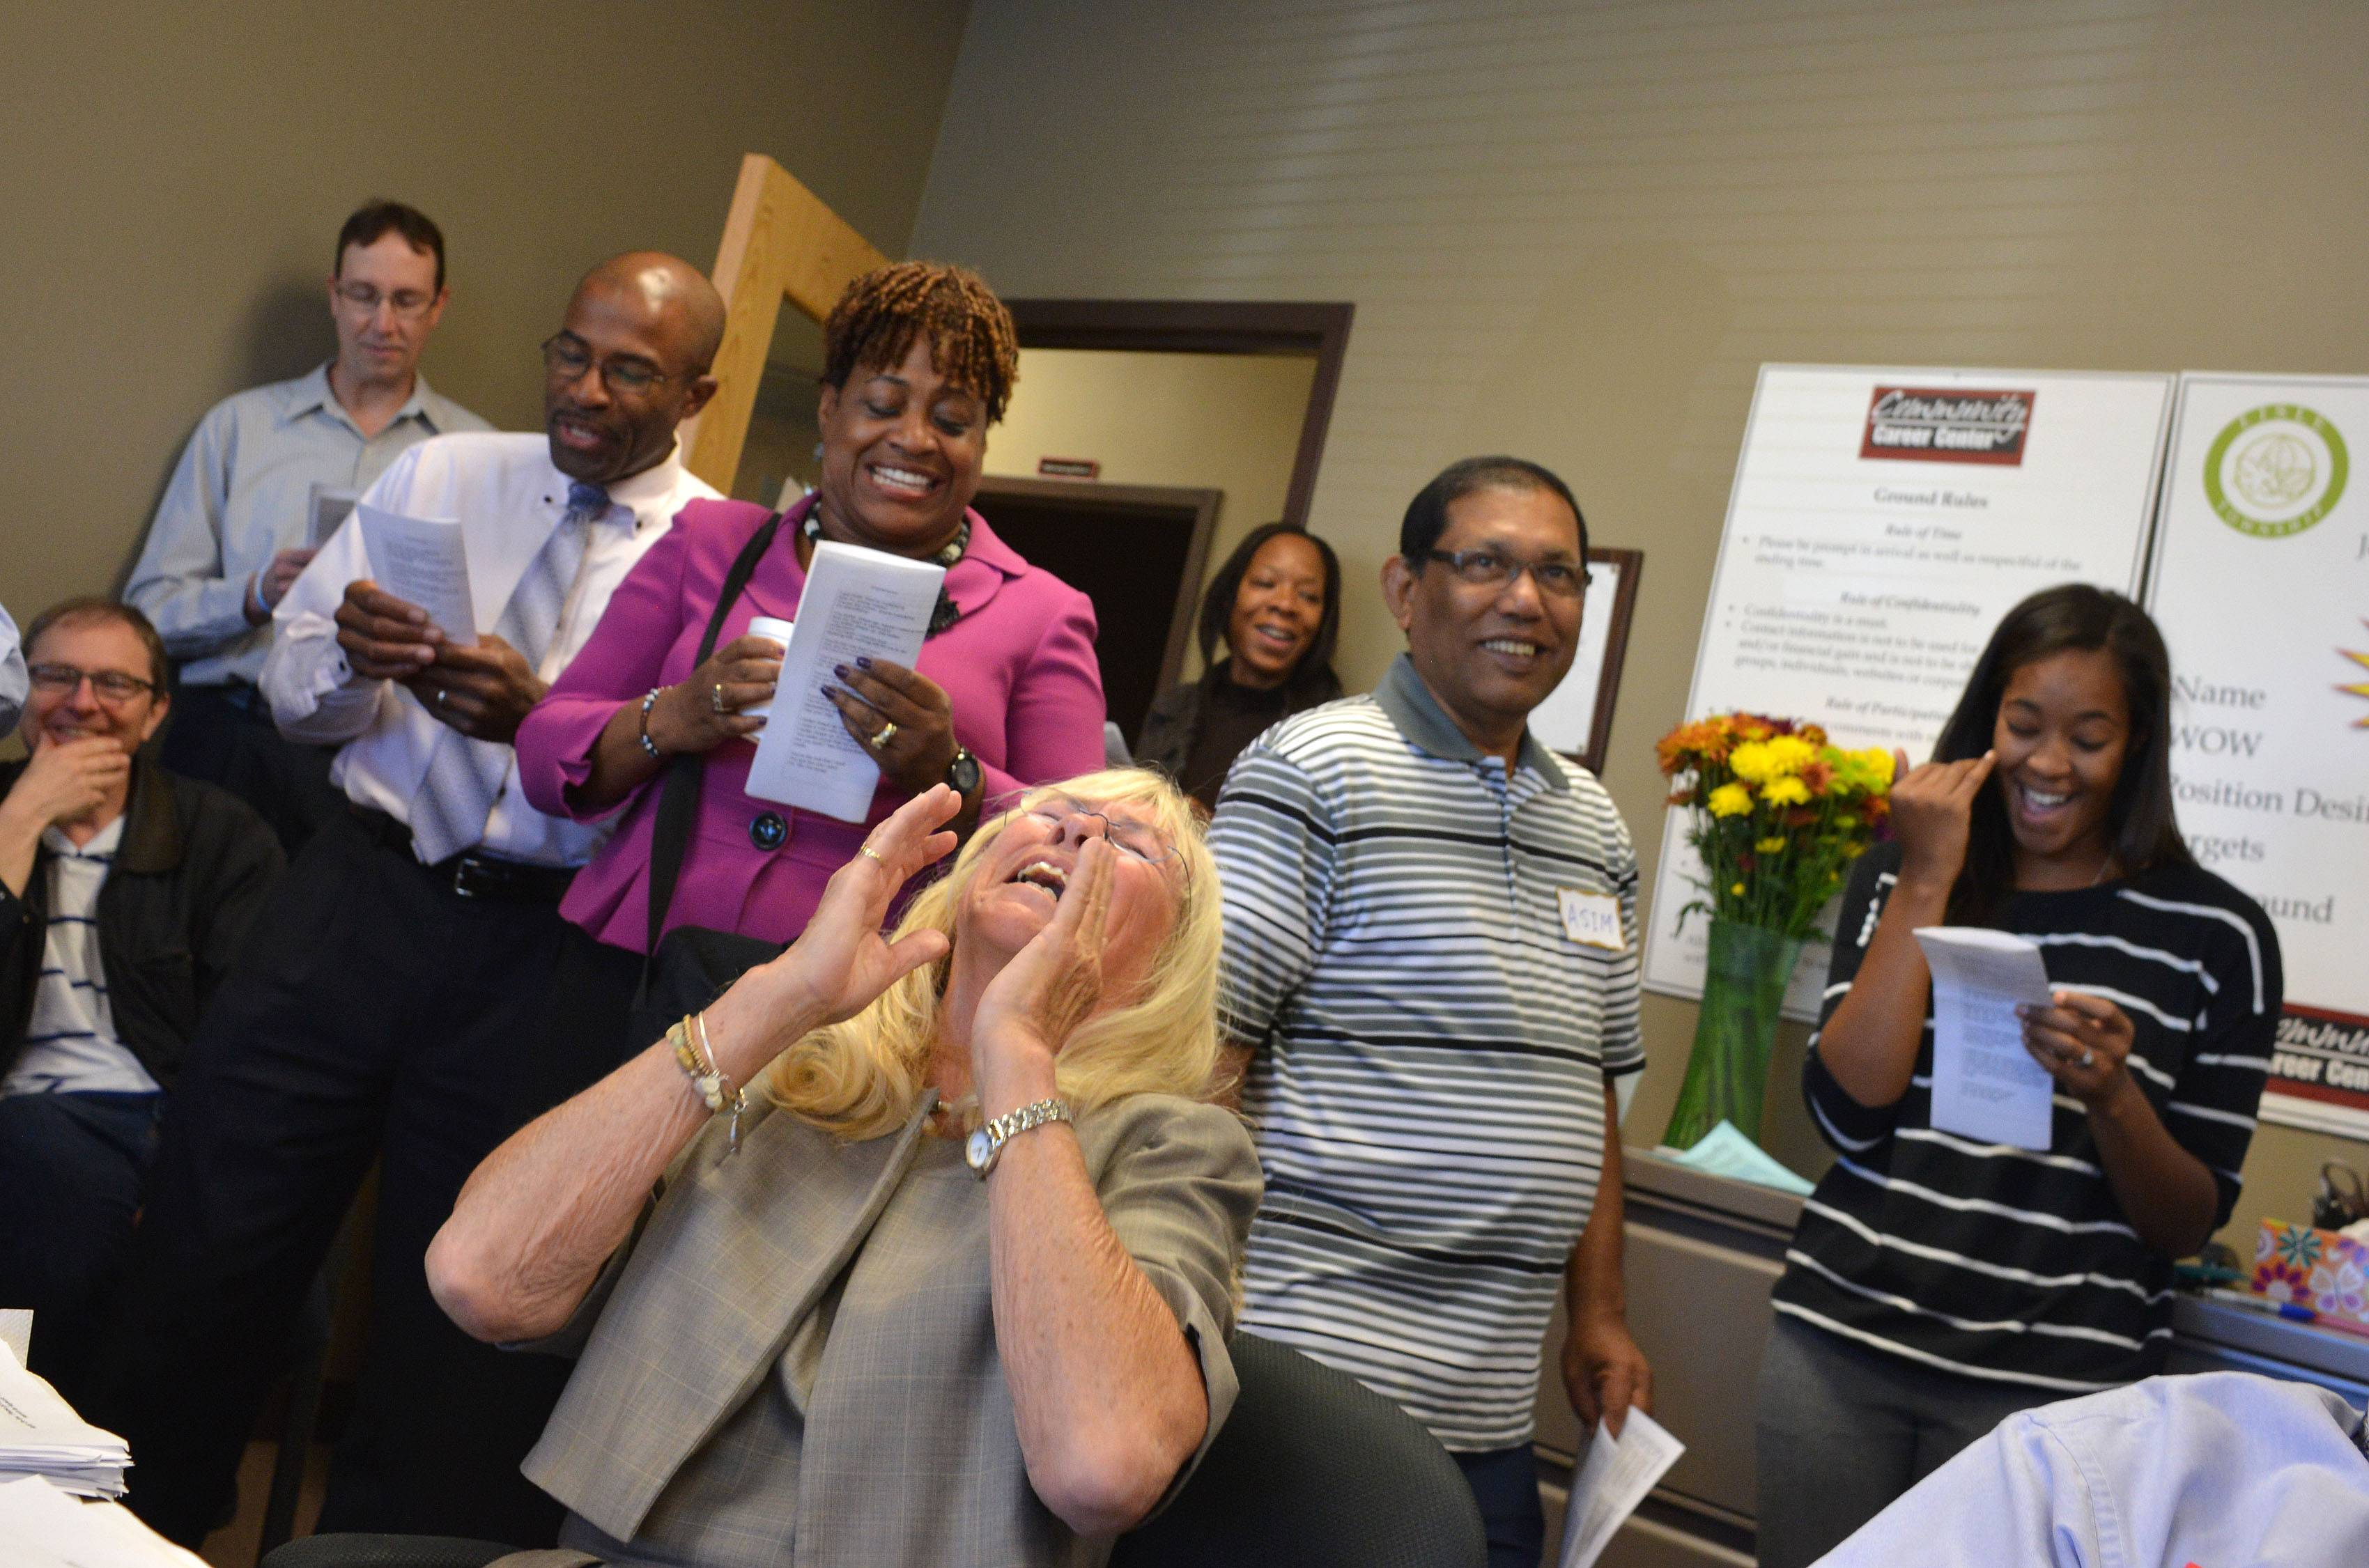 Joy Maguire Dooley, foreground, reacts after being surprised with a 'flash mob' at her last Job Club meeting Wednesday. She is retiring after nearly 20 years of leading the Job Club at the Community Career Center in Naperville, which she helped found.